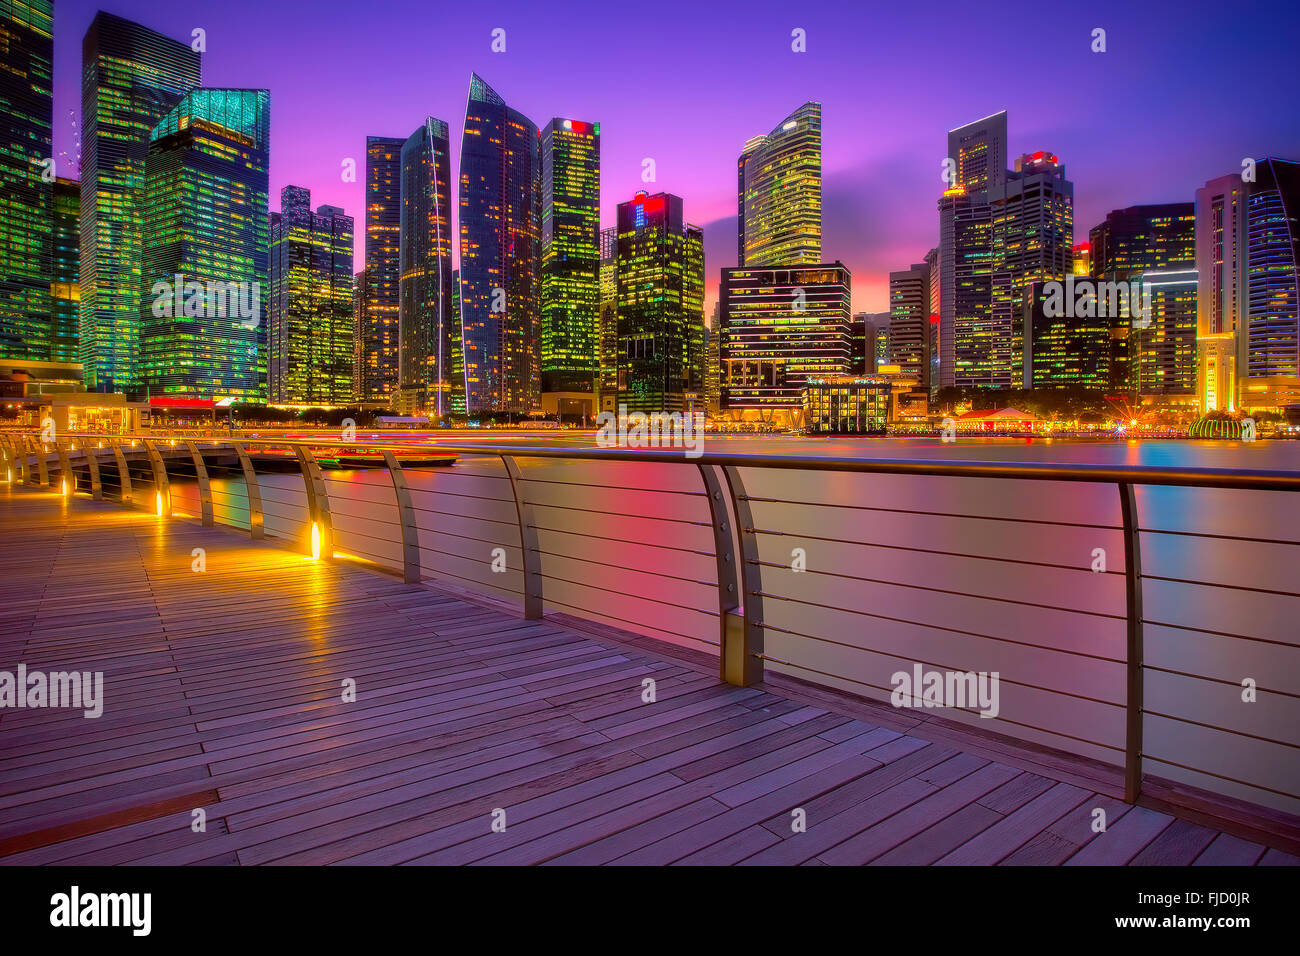 Singapore marina at sunset - Stock Image